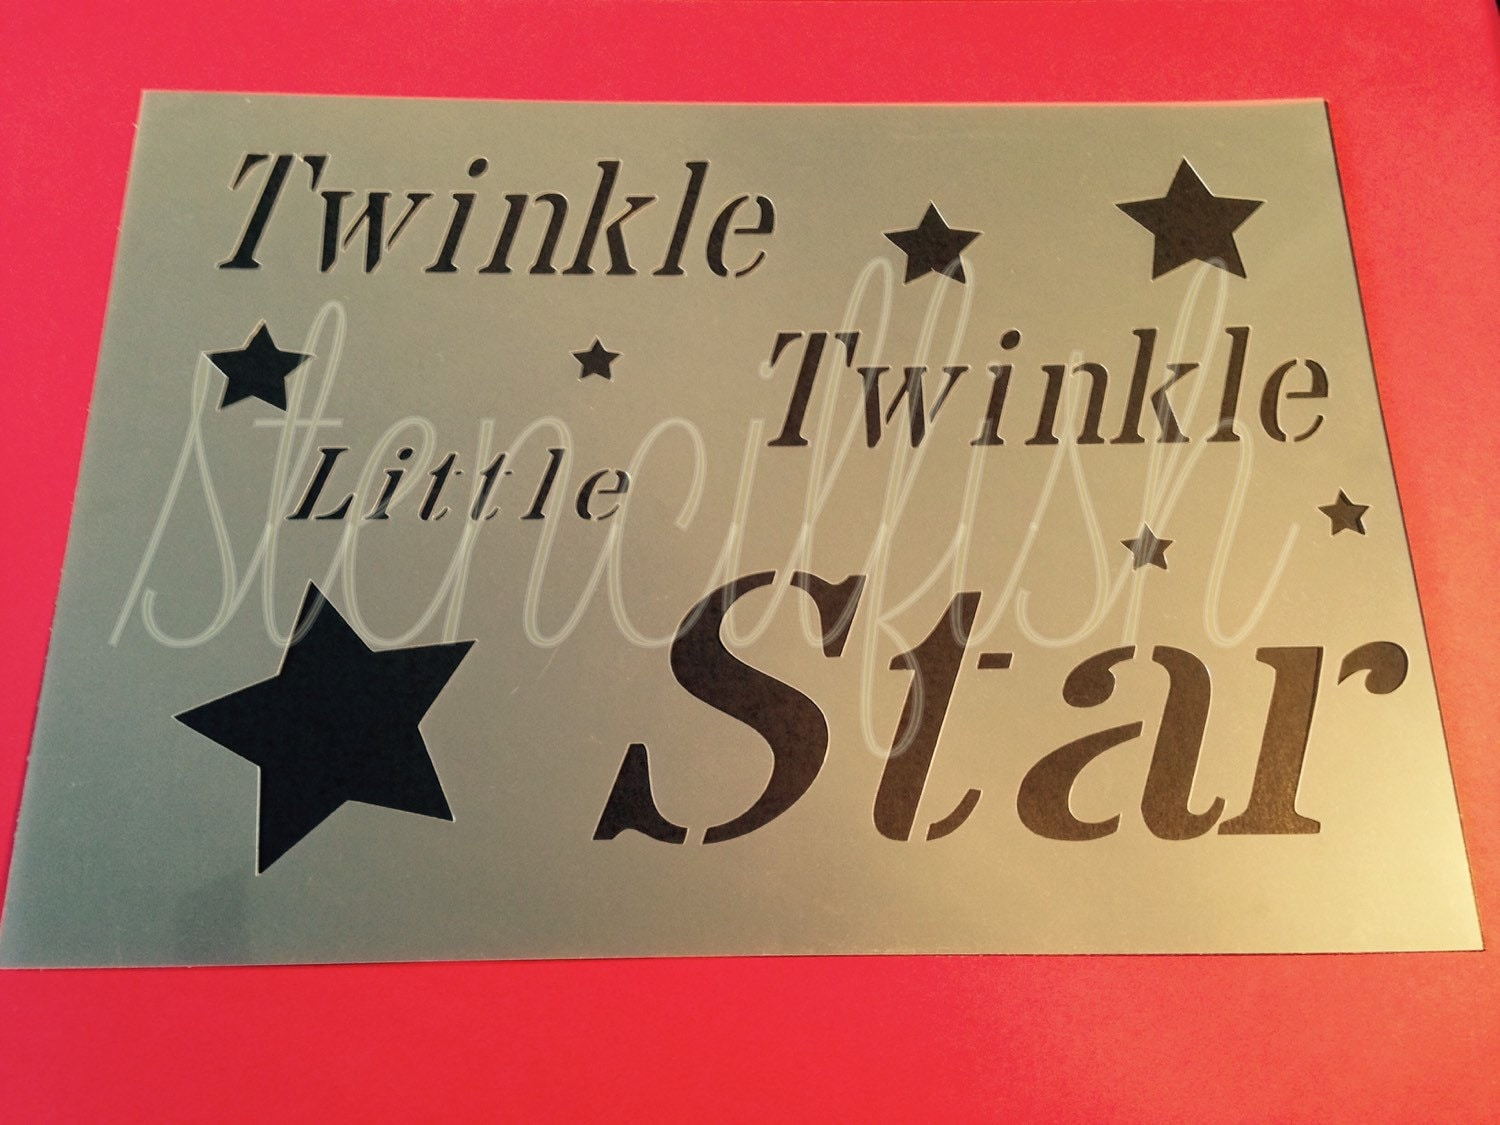 Twinkle little star stencil quote craft silhouette plaque for Quote stencils for crafts